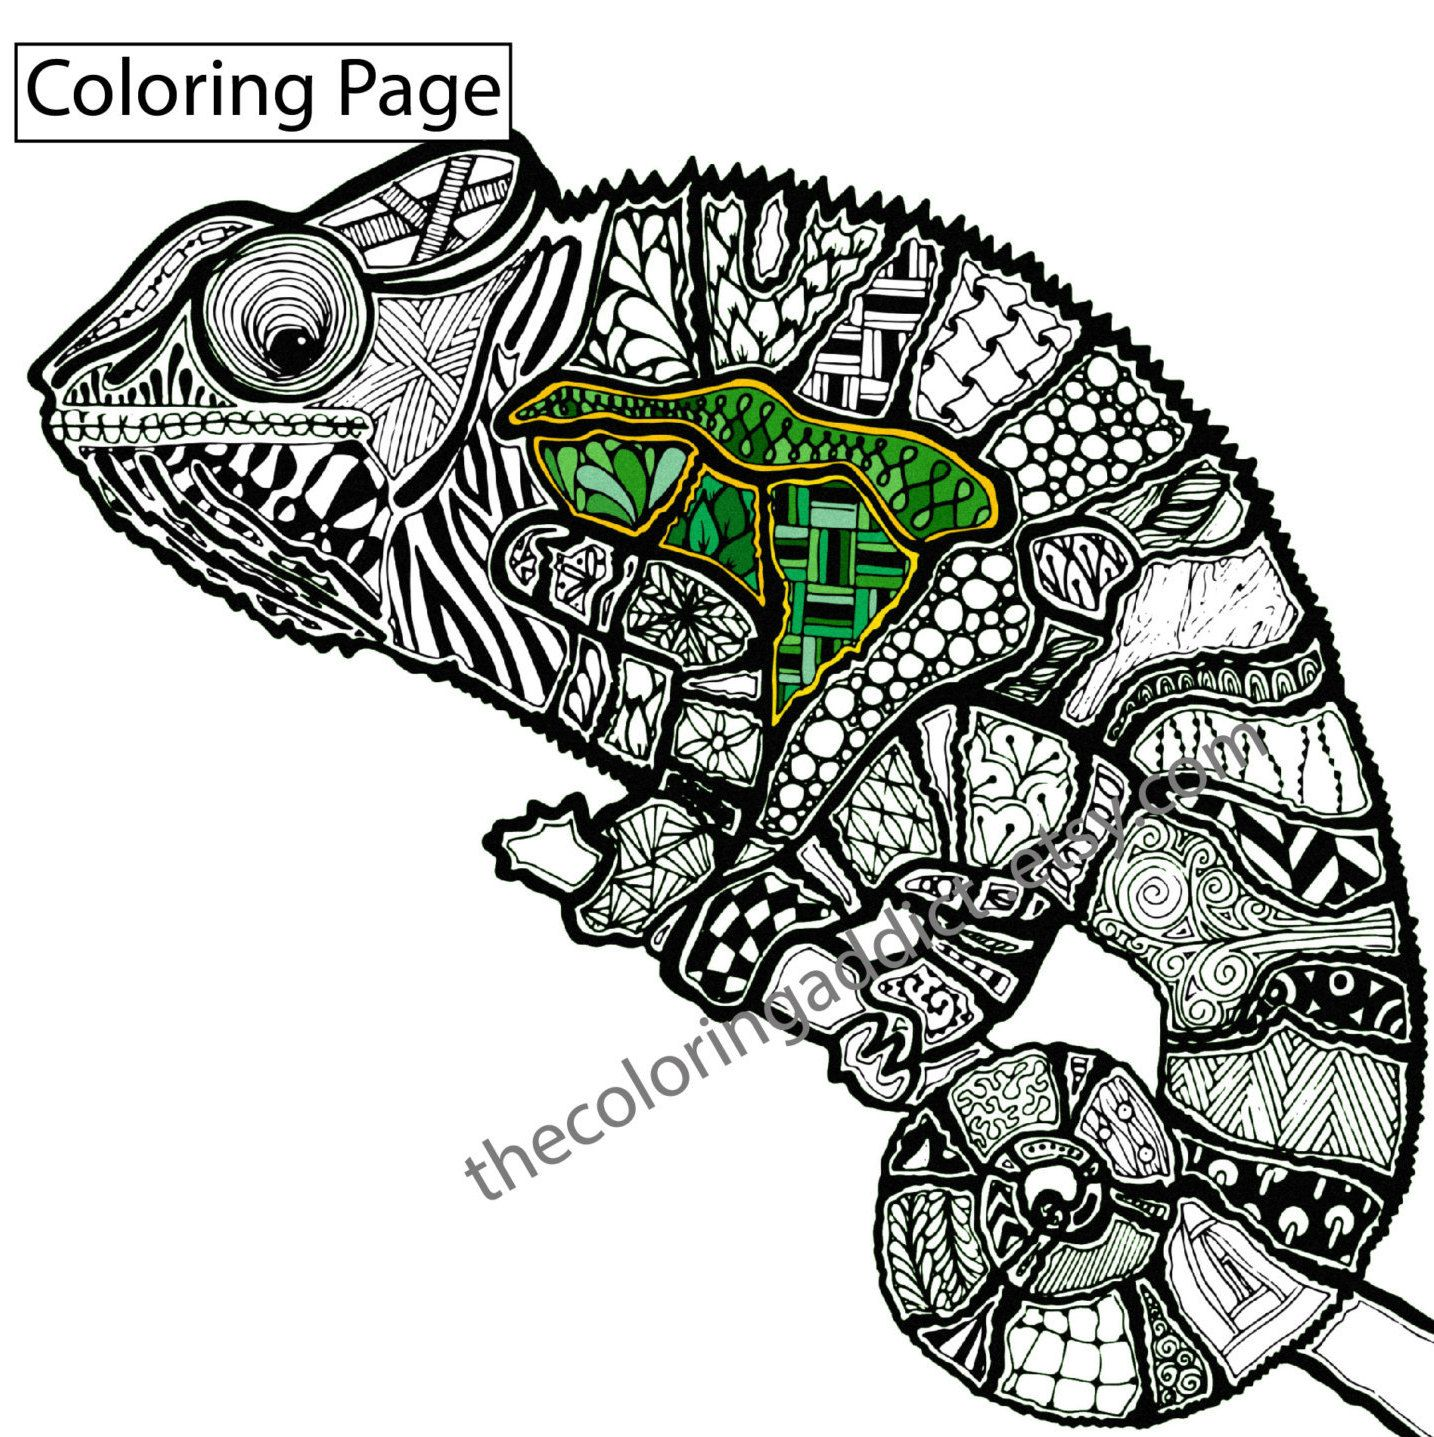 zentangle lizard coloring page animal zentangle colouring completed colored adult coloring. Black Bedroom Furniture Sets. Home Design Ideas